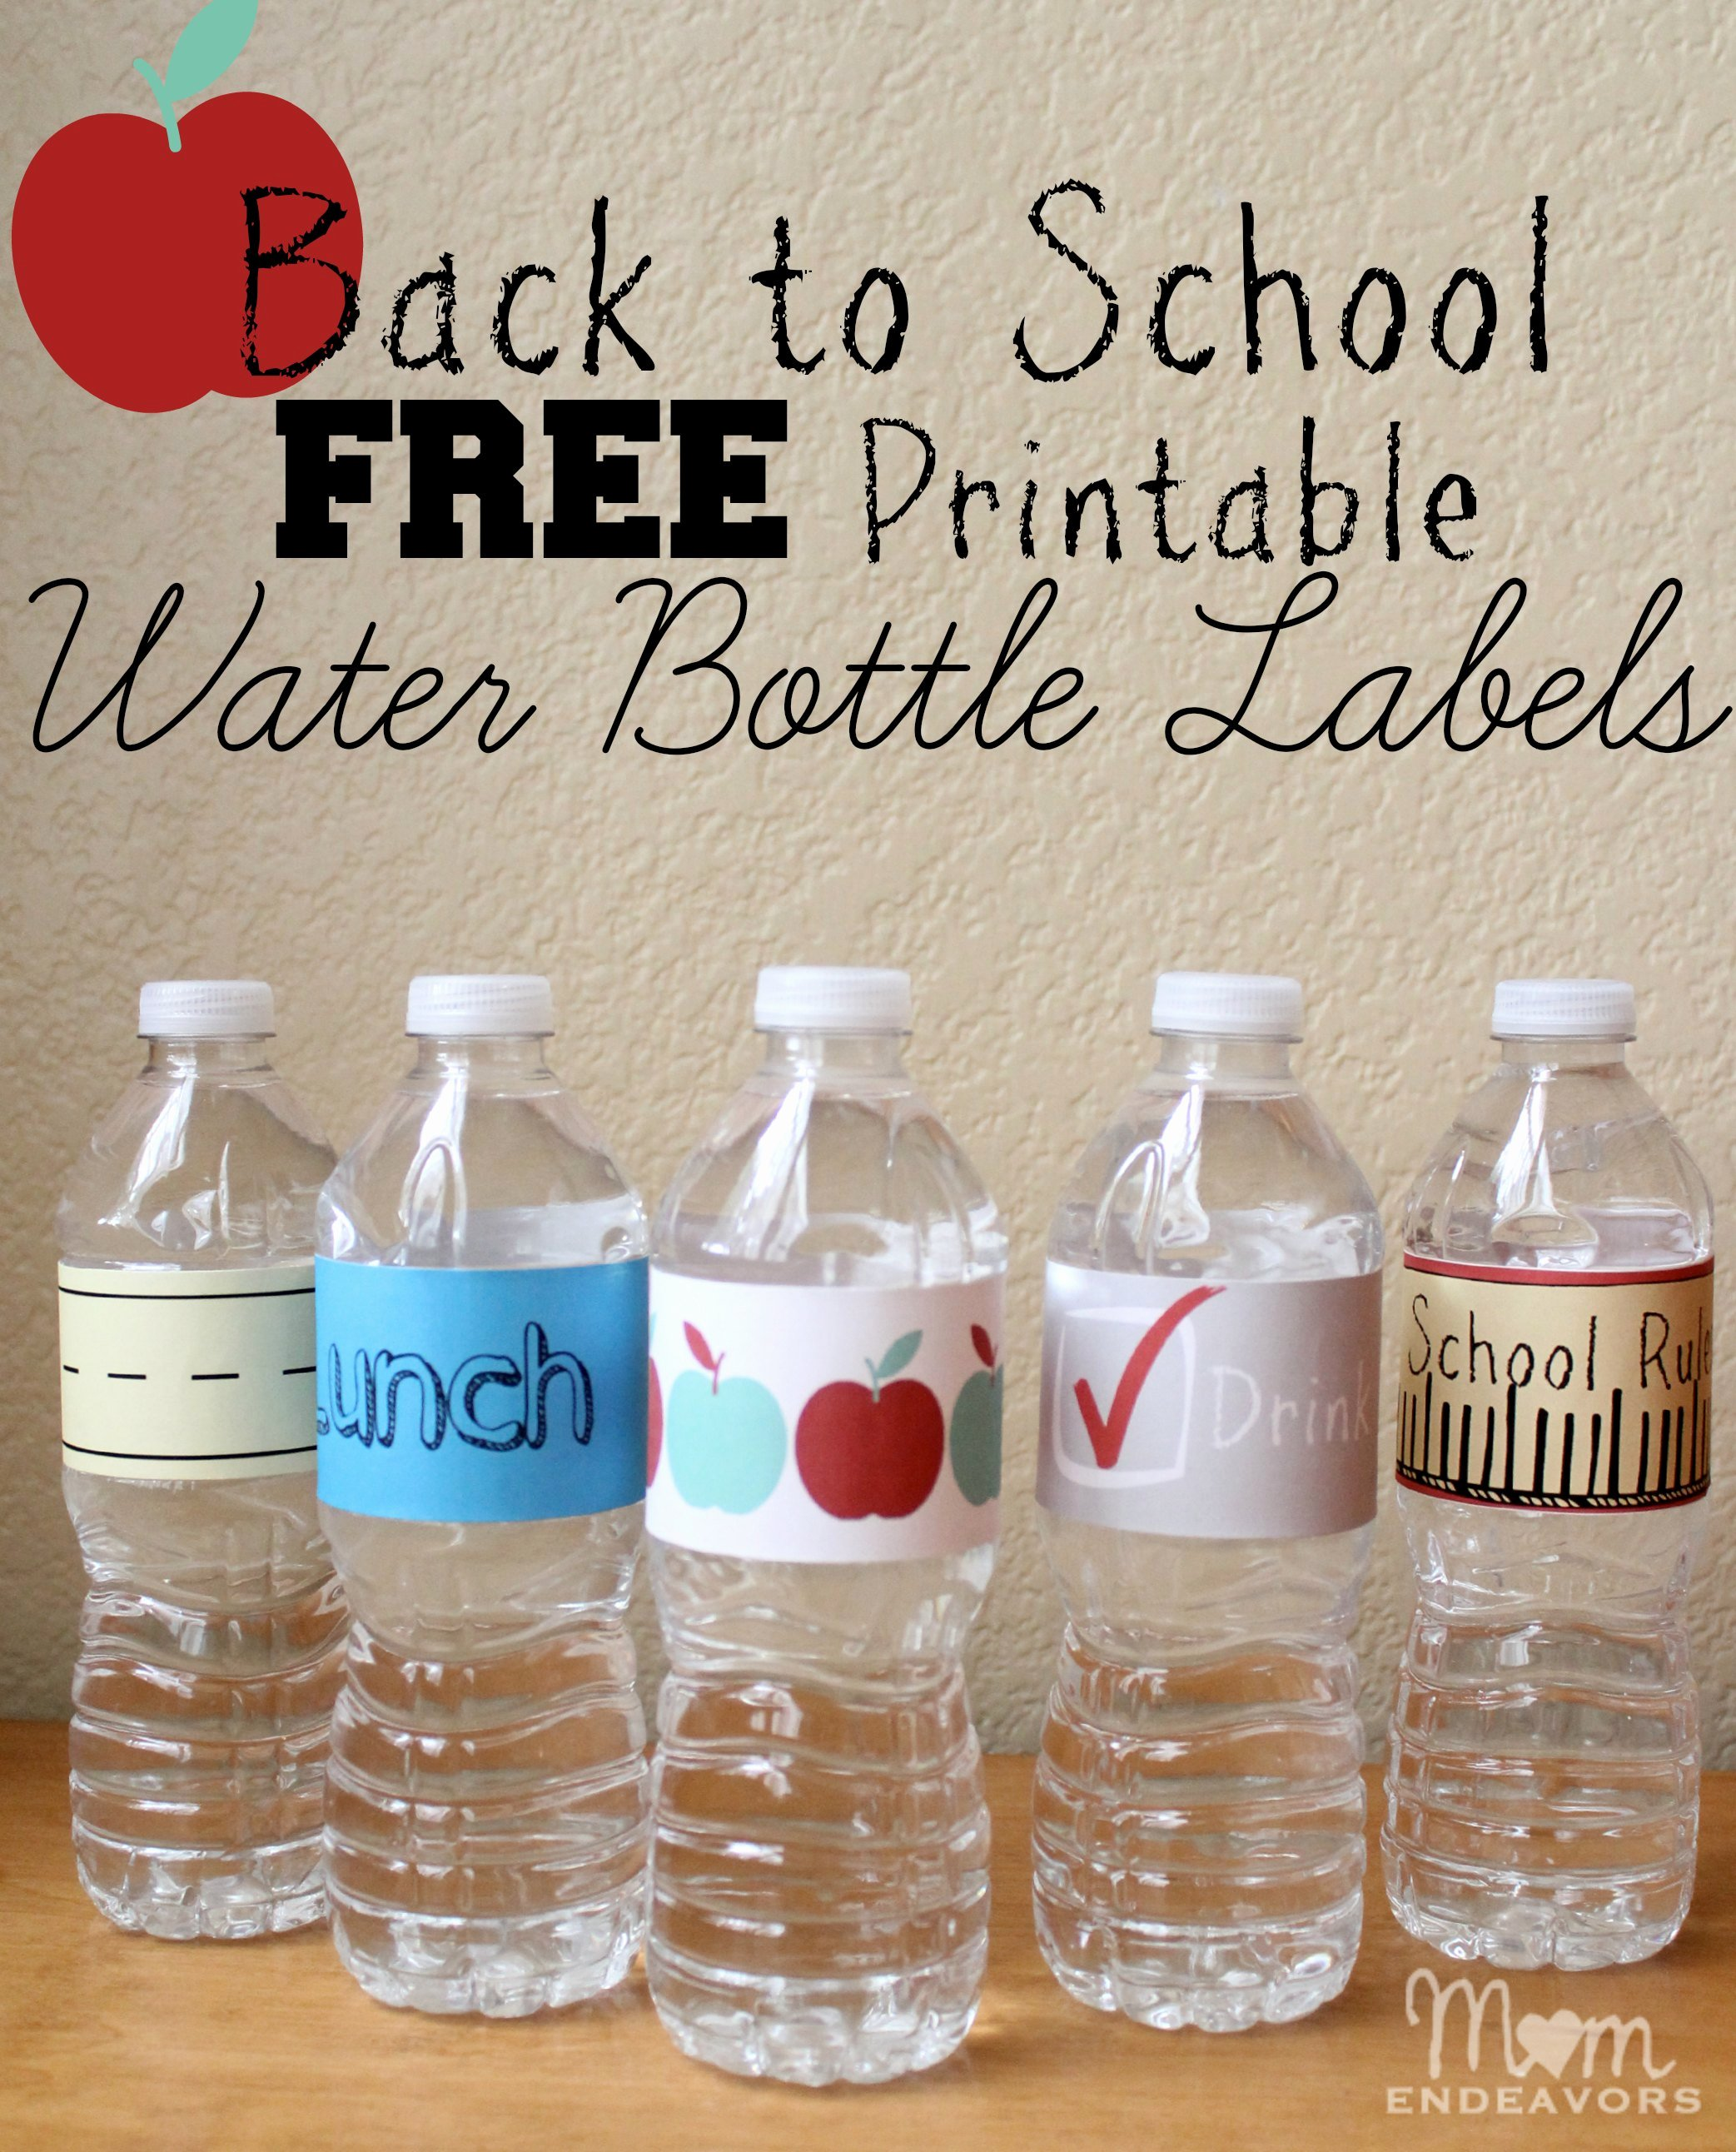 Water Labels Template Free Luxury Printable Frozen Bottle Labels Free